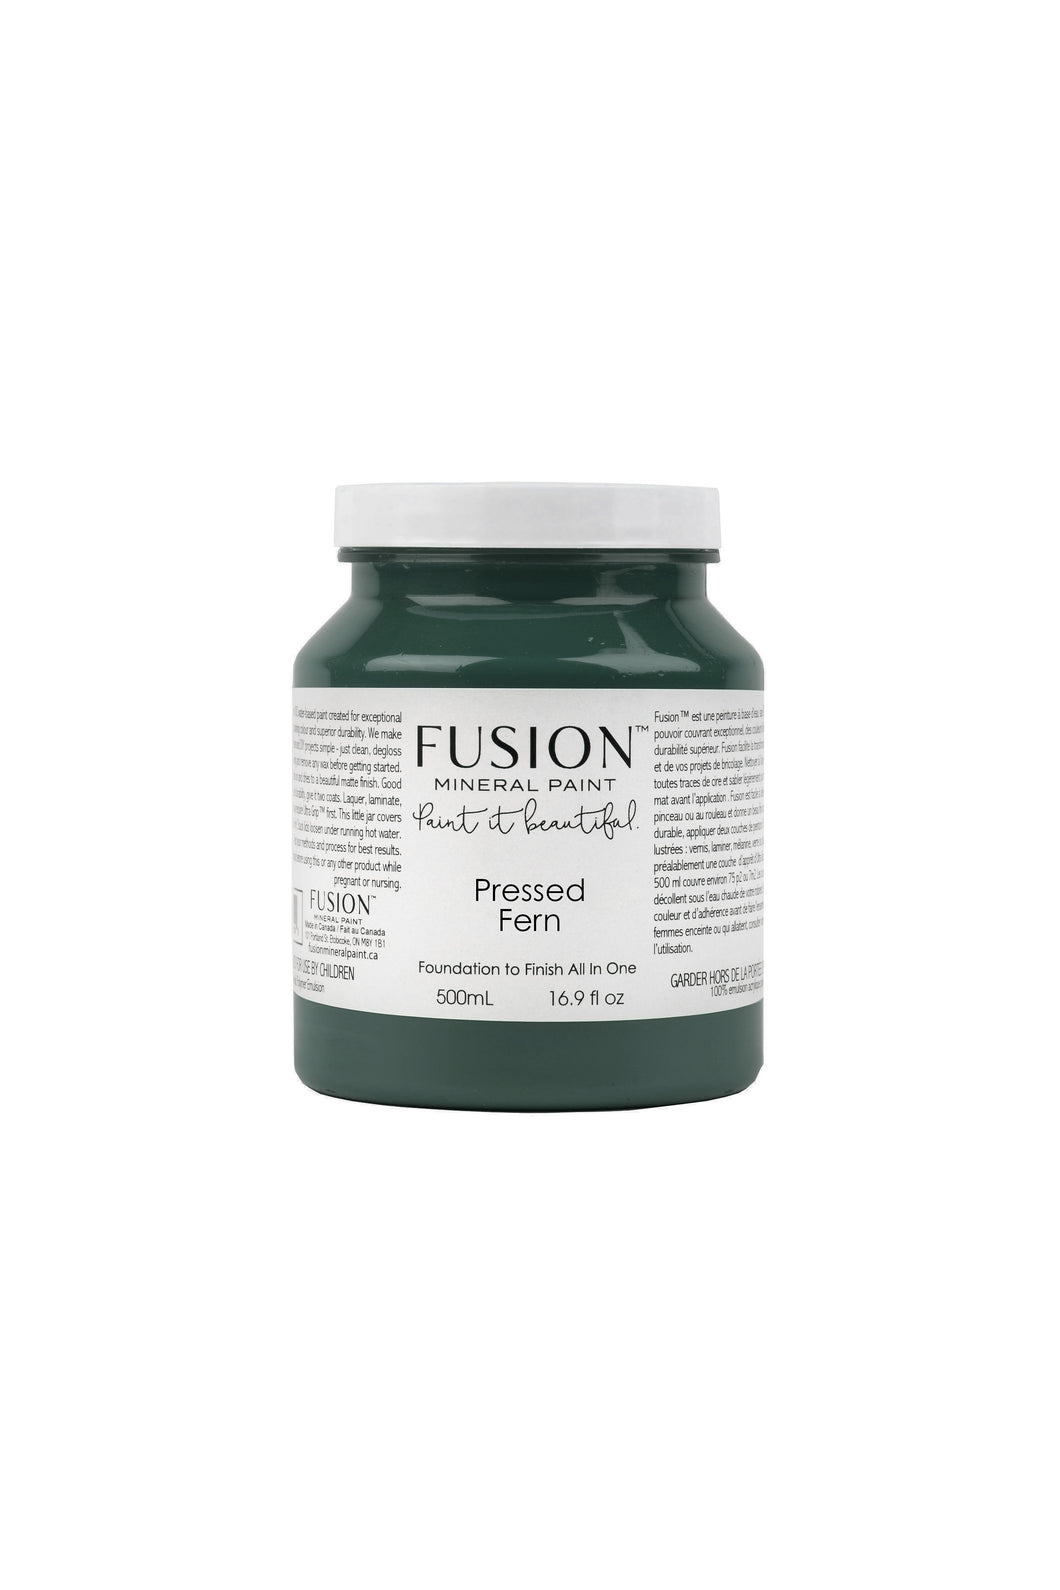 Fusion mineral paint | Pressed Fern | 500ml | Colour Me KT